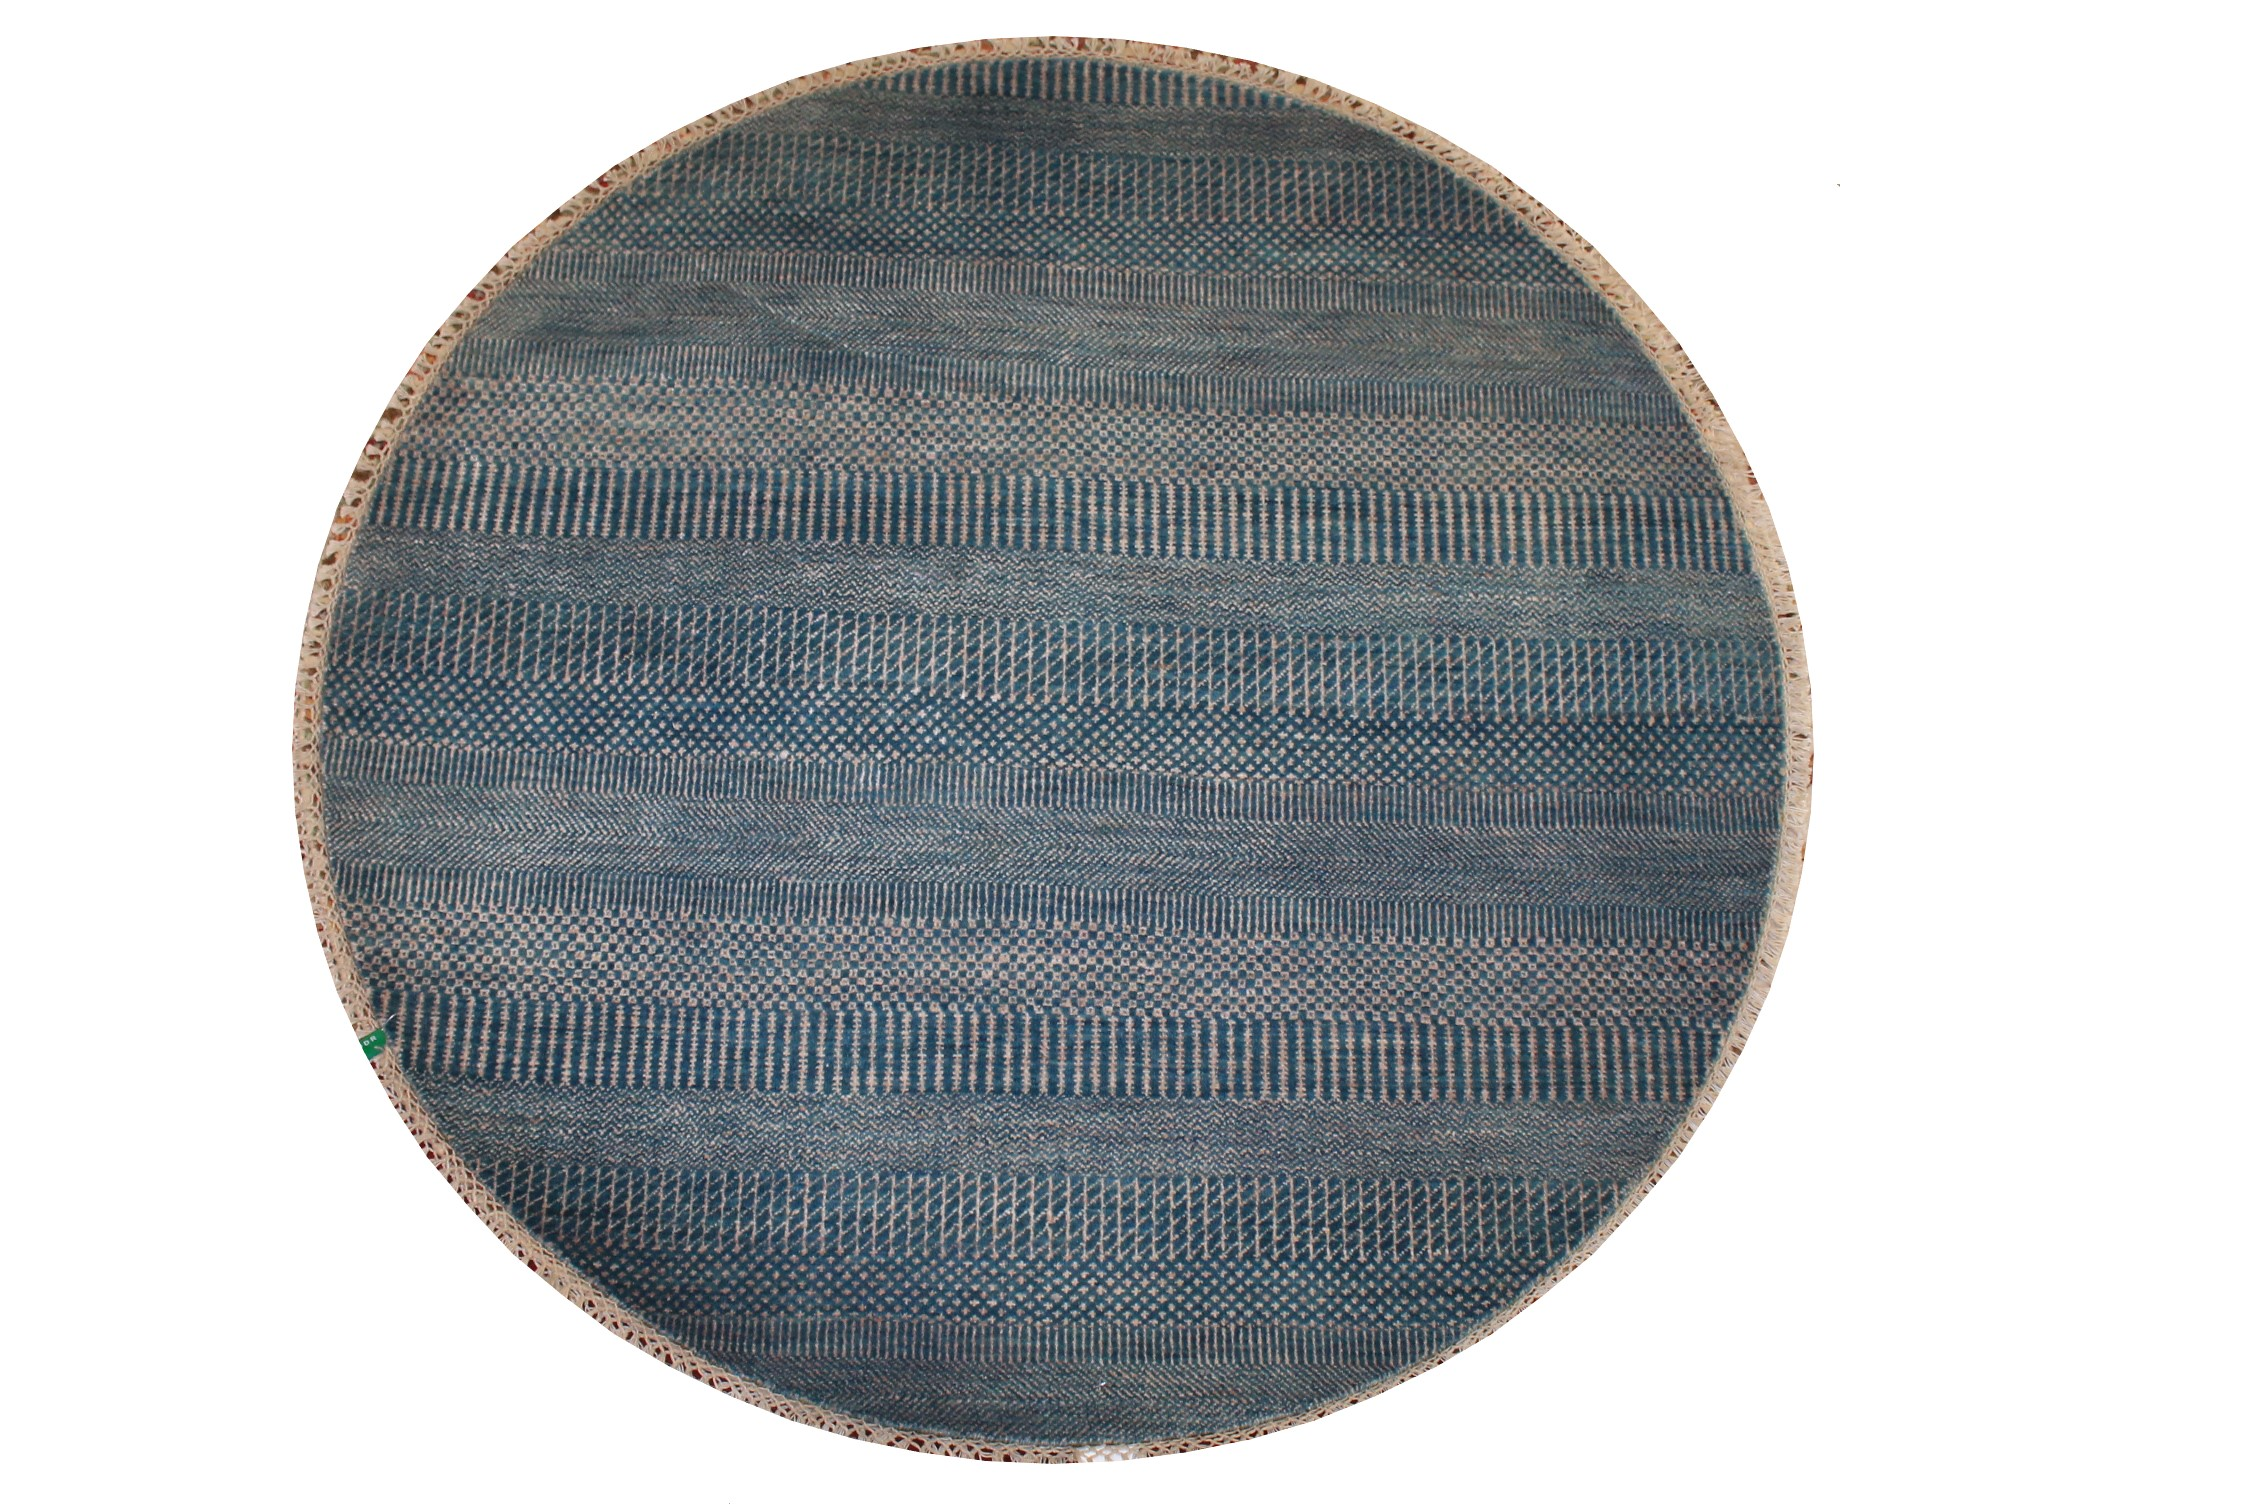 5 ft. Round & Square Casual Hand Knotted Wool Area Rug - MR024259